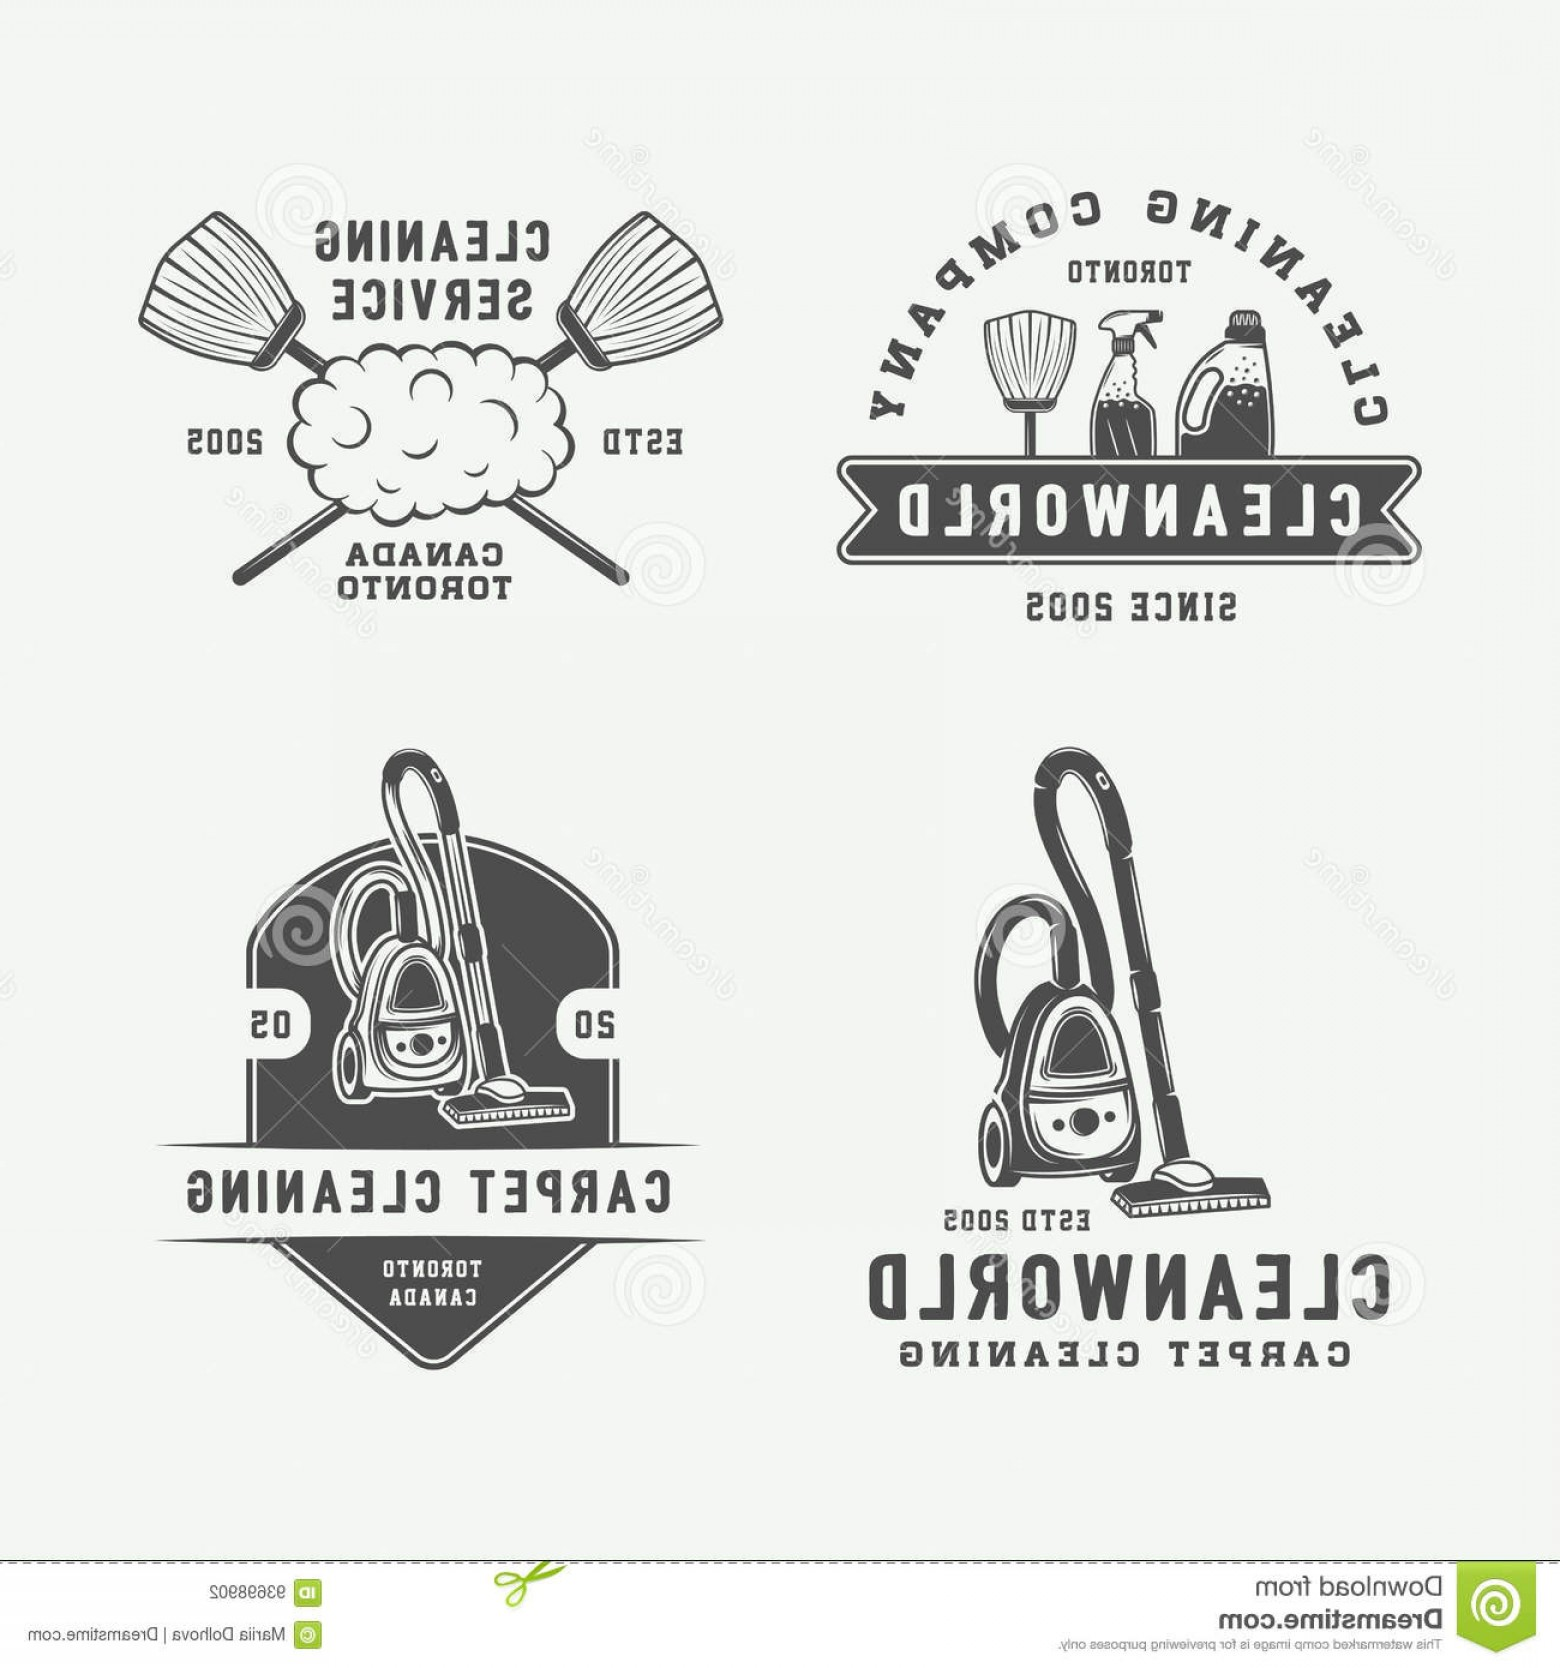 Cleaning Logo Vector Art: Stock Illustration Set Retro Cleaning Logo Badges Emblems Labels Vintage Style Monochrome Graphic Art Vector Illustration Image